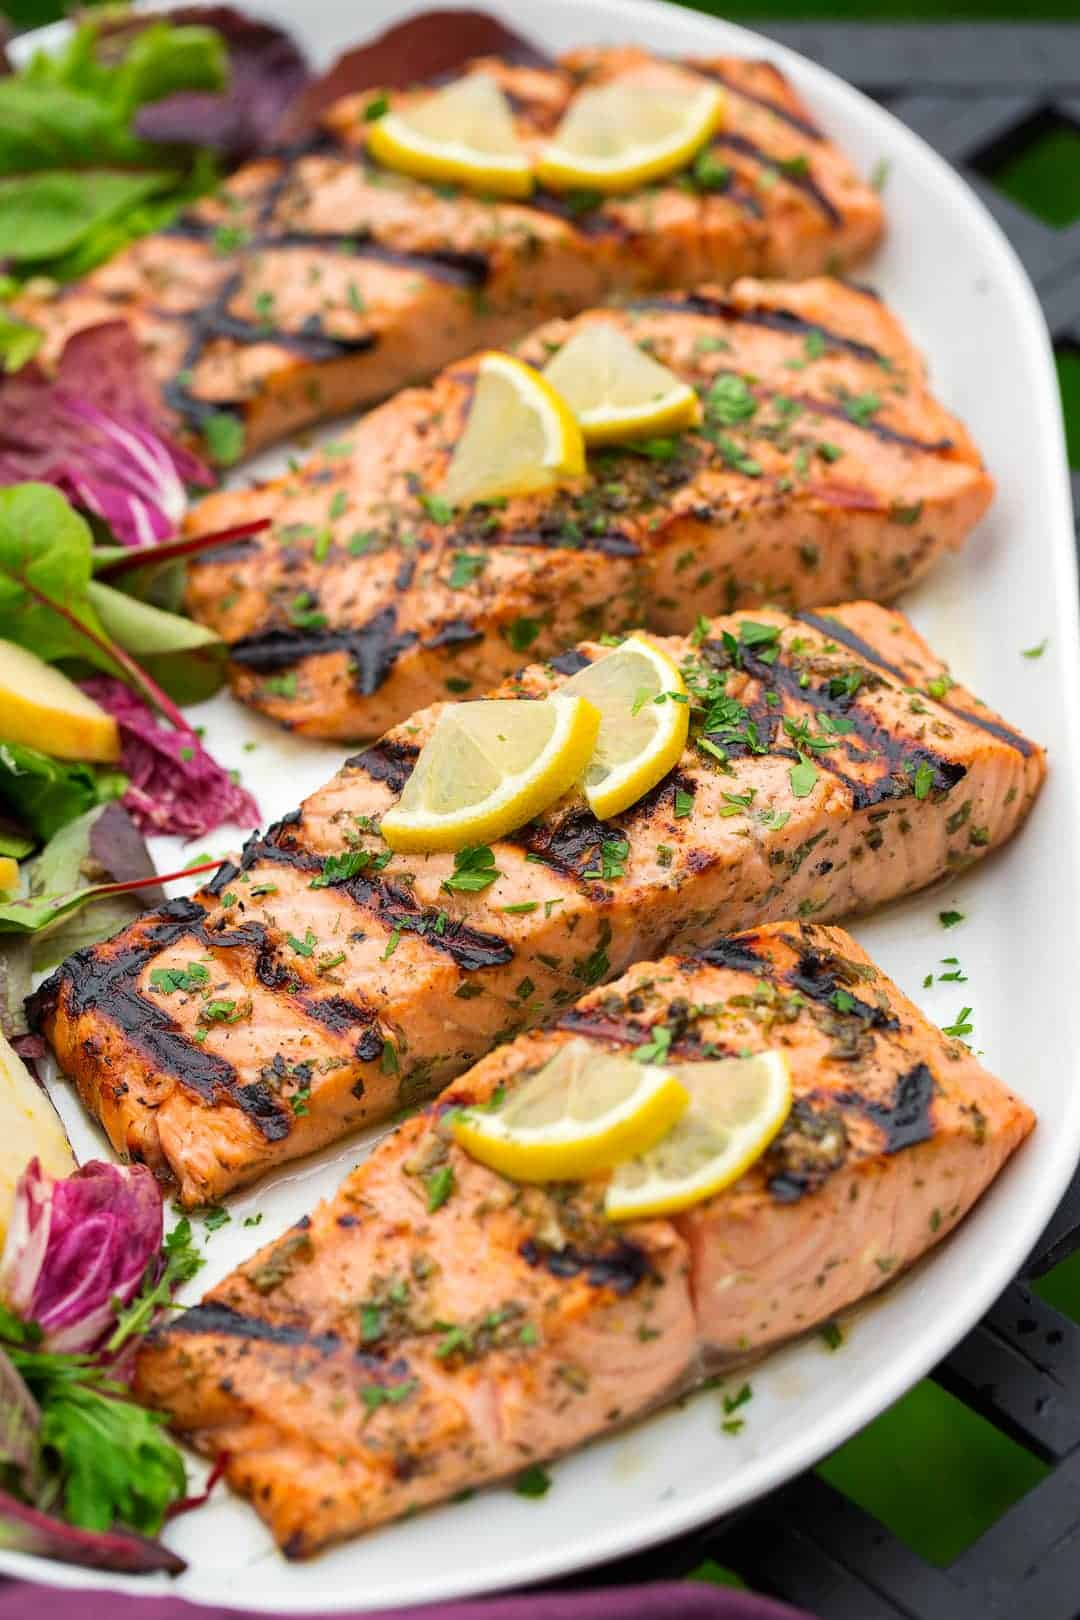 Healthy Salmon Recipes For You To Make